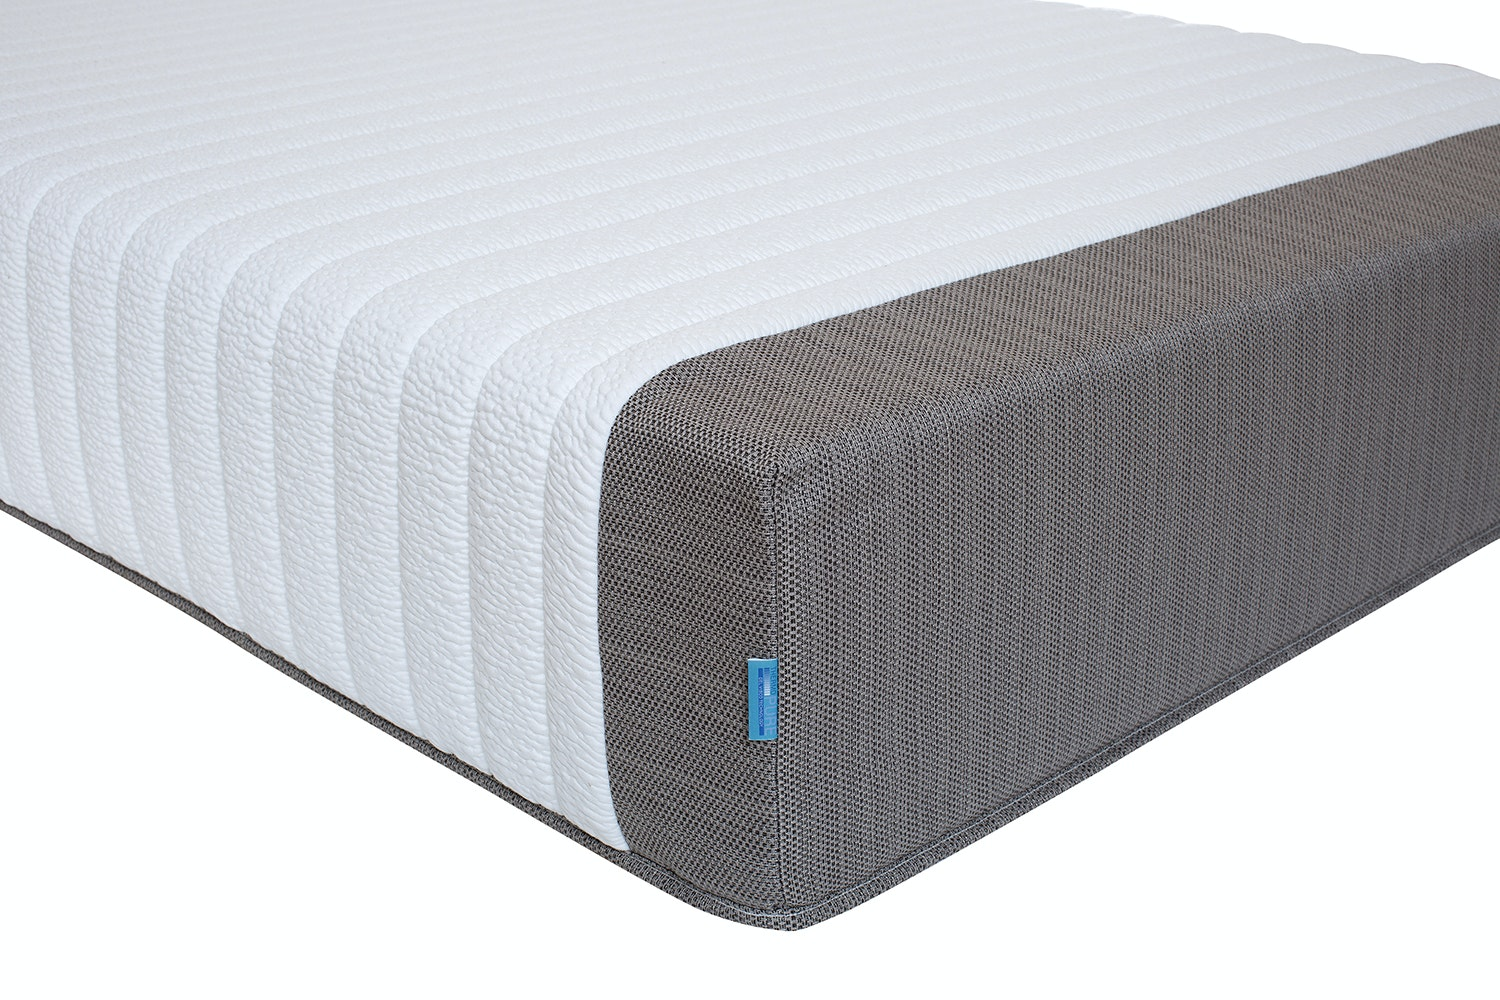 Thermopure 9500 Double Mattress - (4ft6)